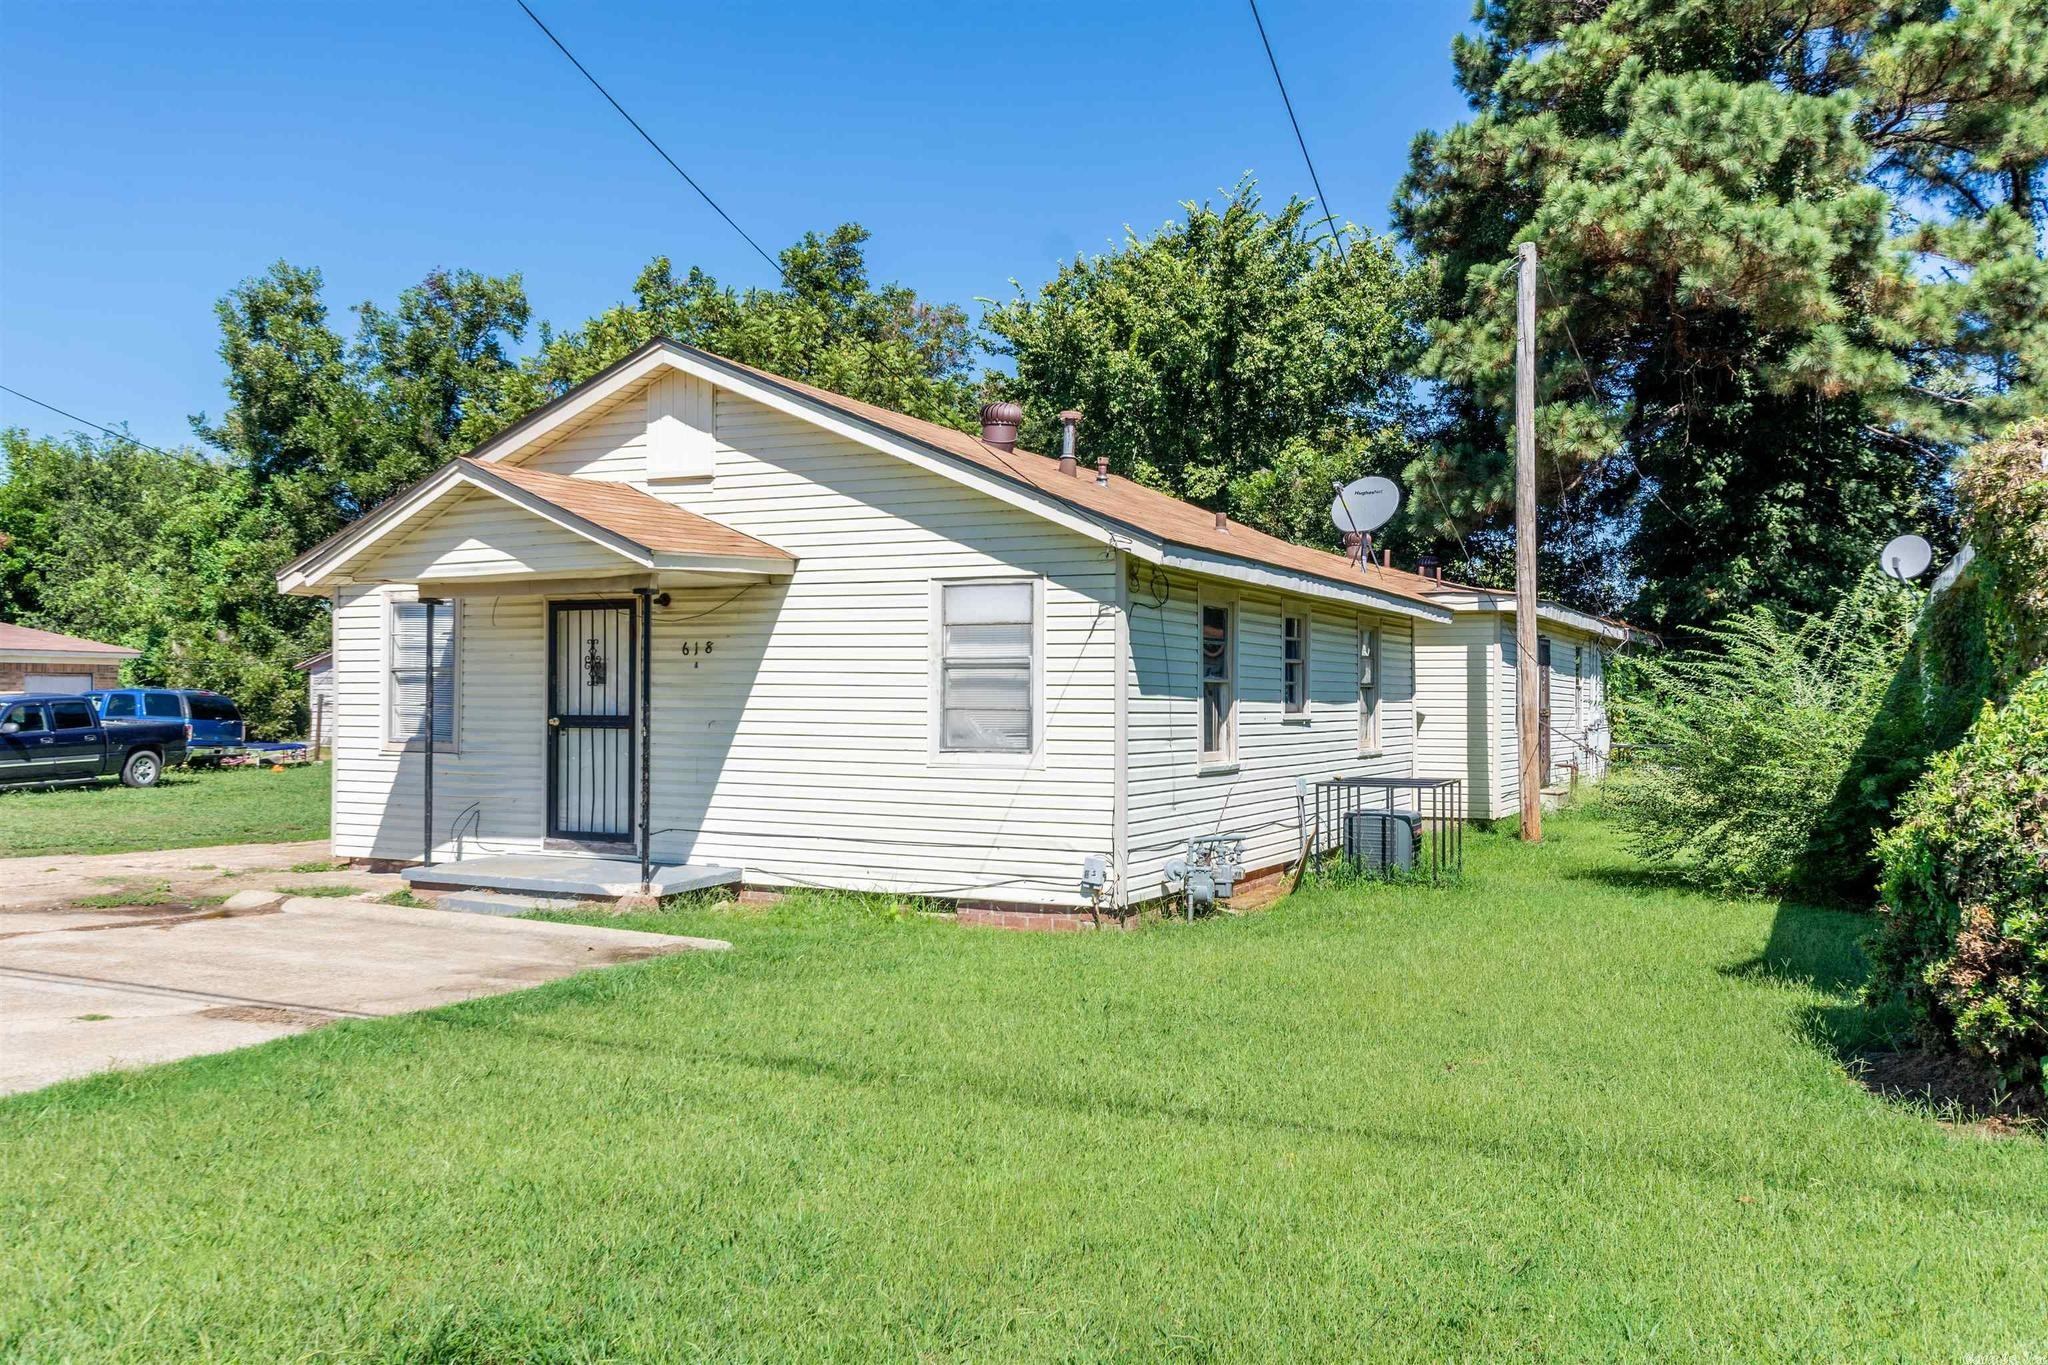 1-Story Multi-Family Home In Forrest City